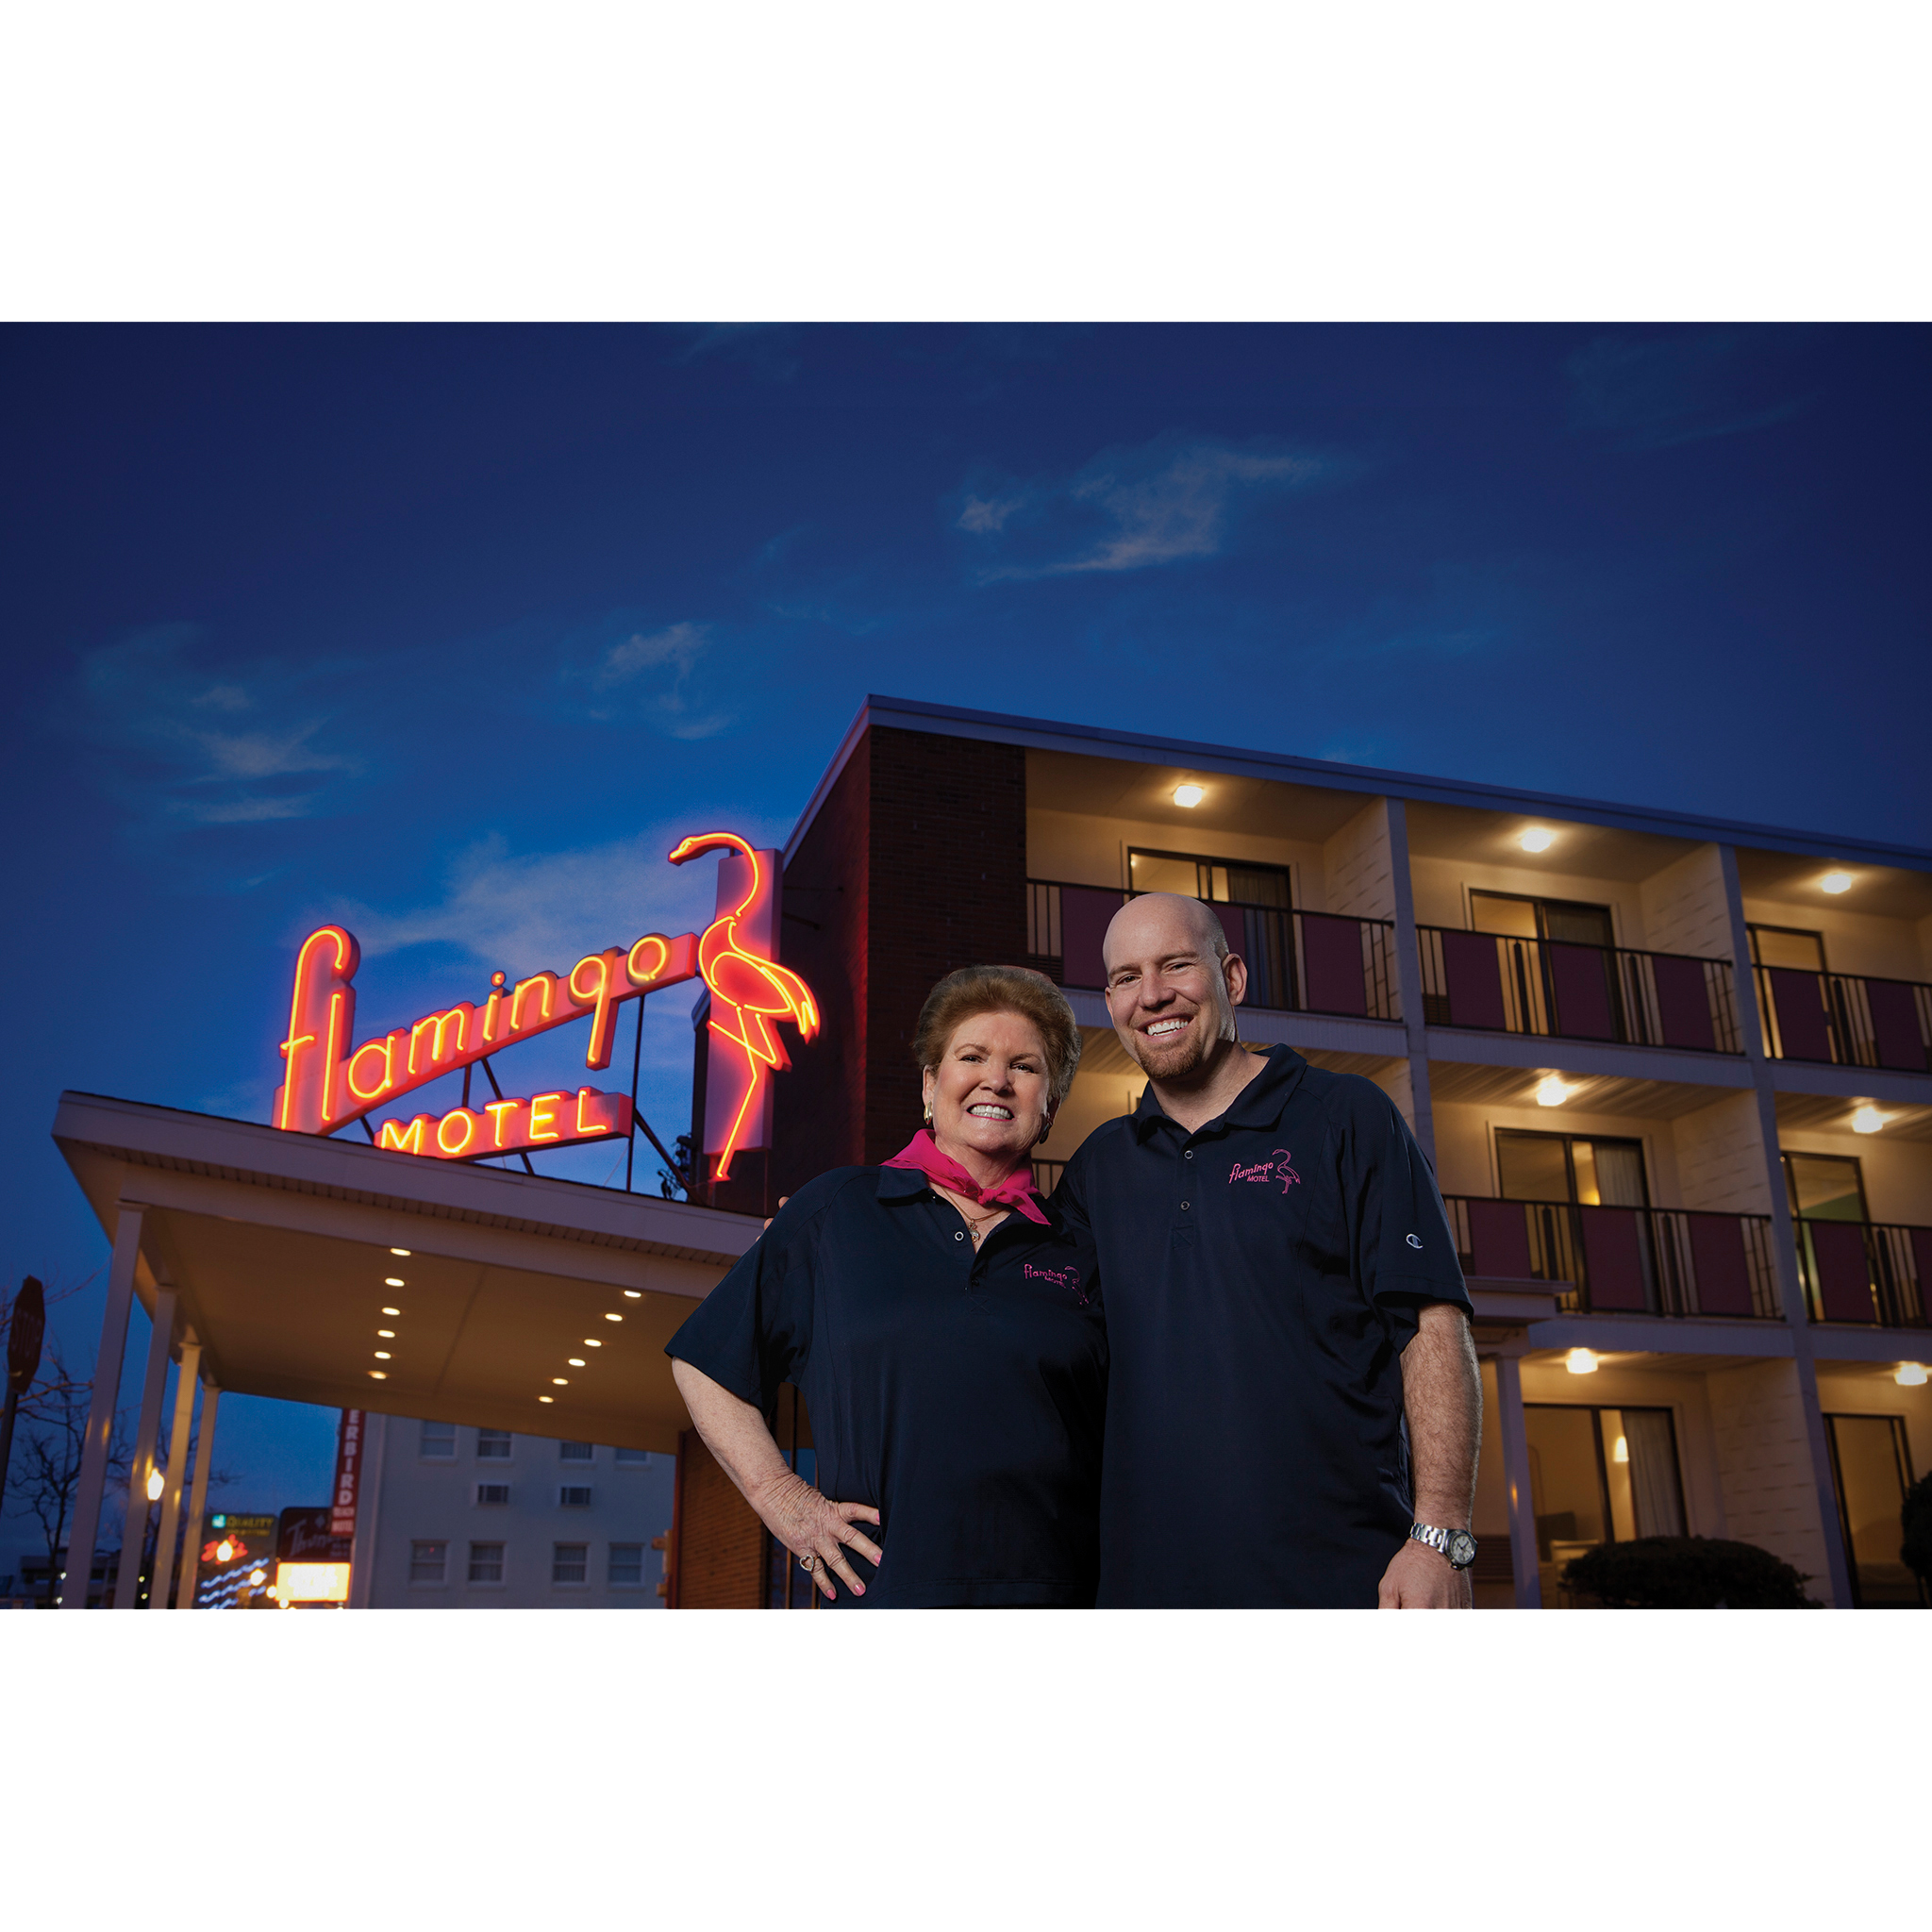 Owners of Flamingo Motel Ocean City MD for bank advertising